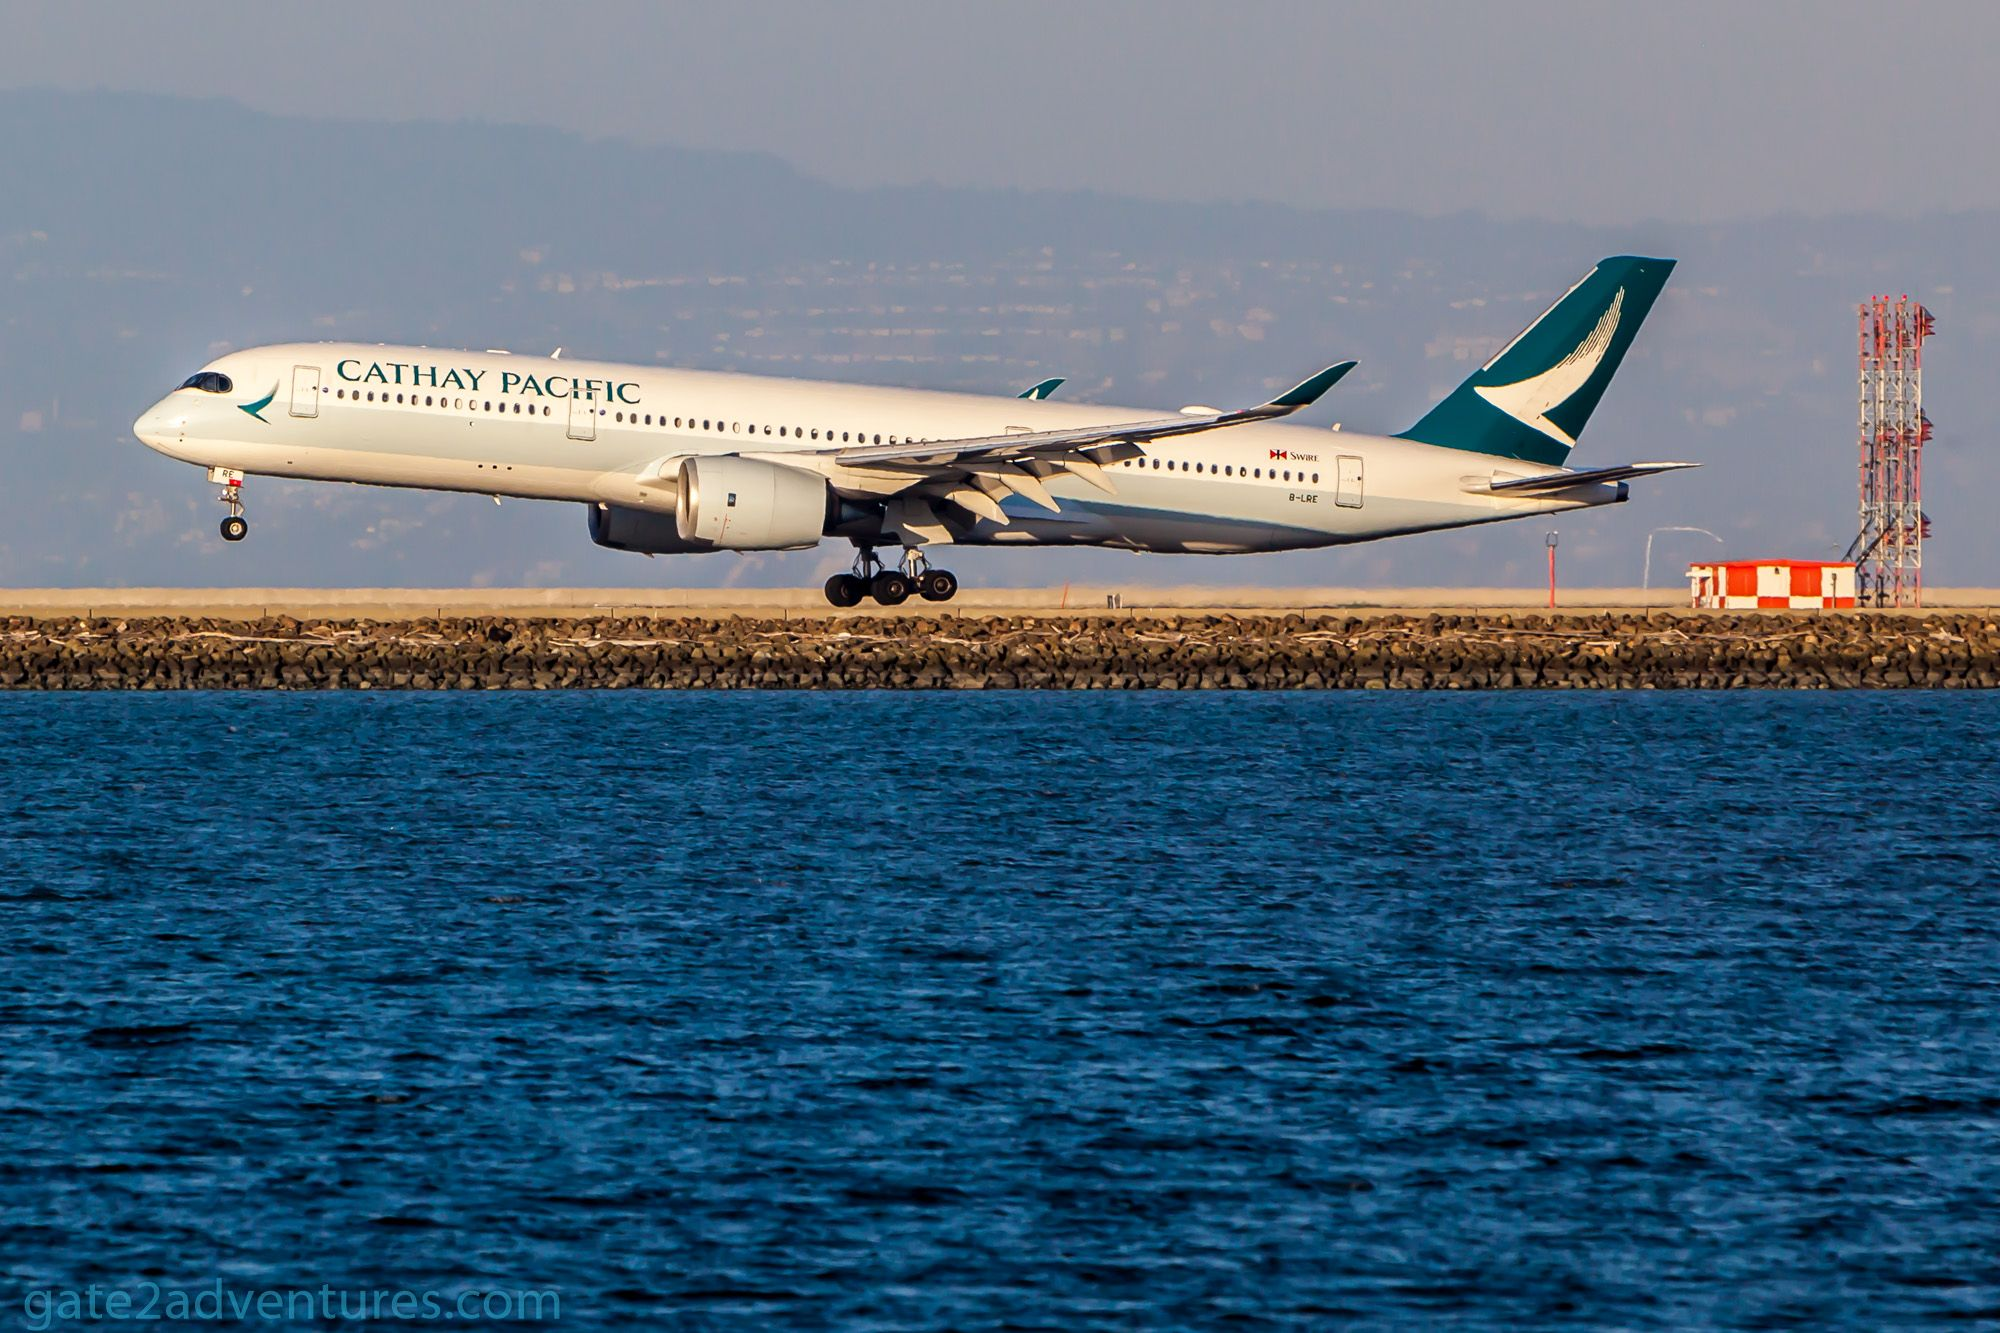 Cathay Pacific's A350 Inaugural  Flight to SFO